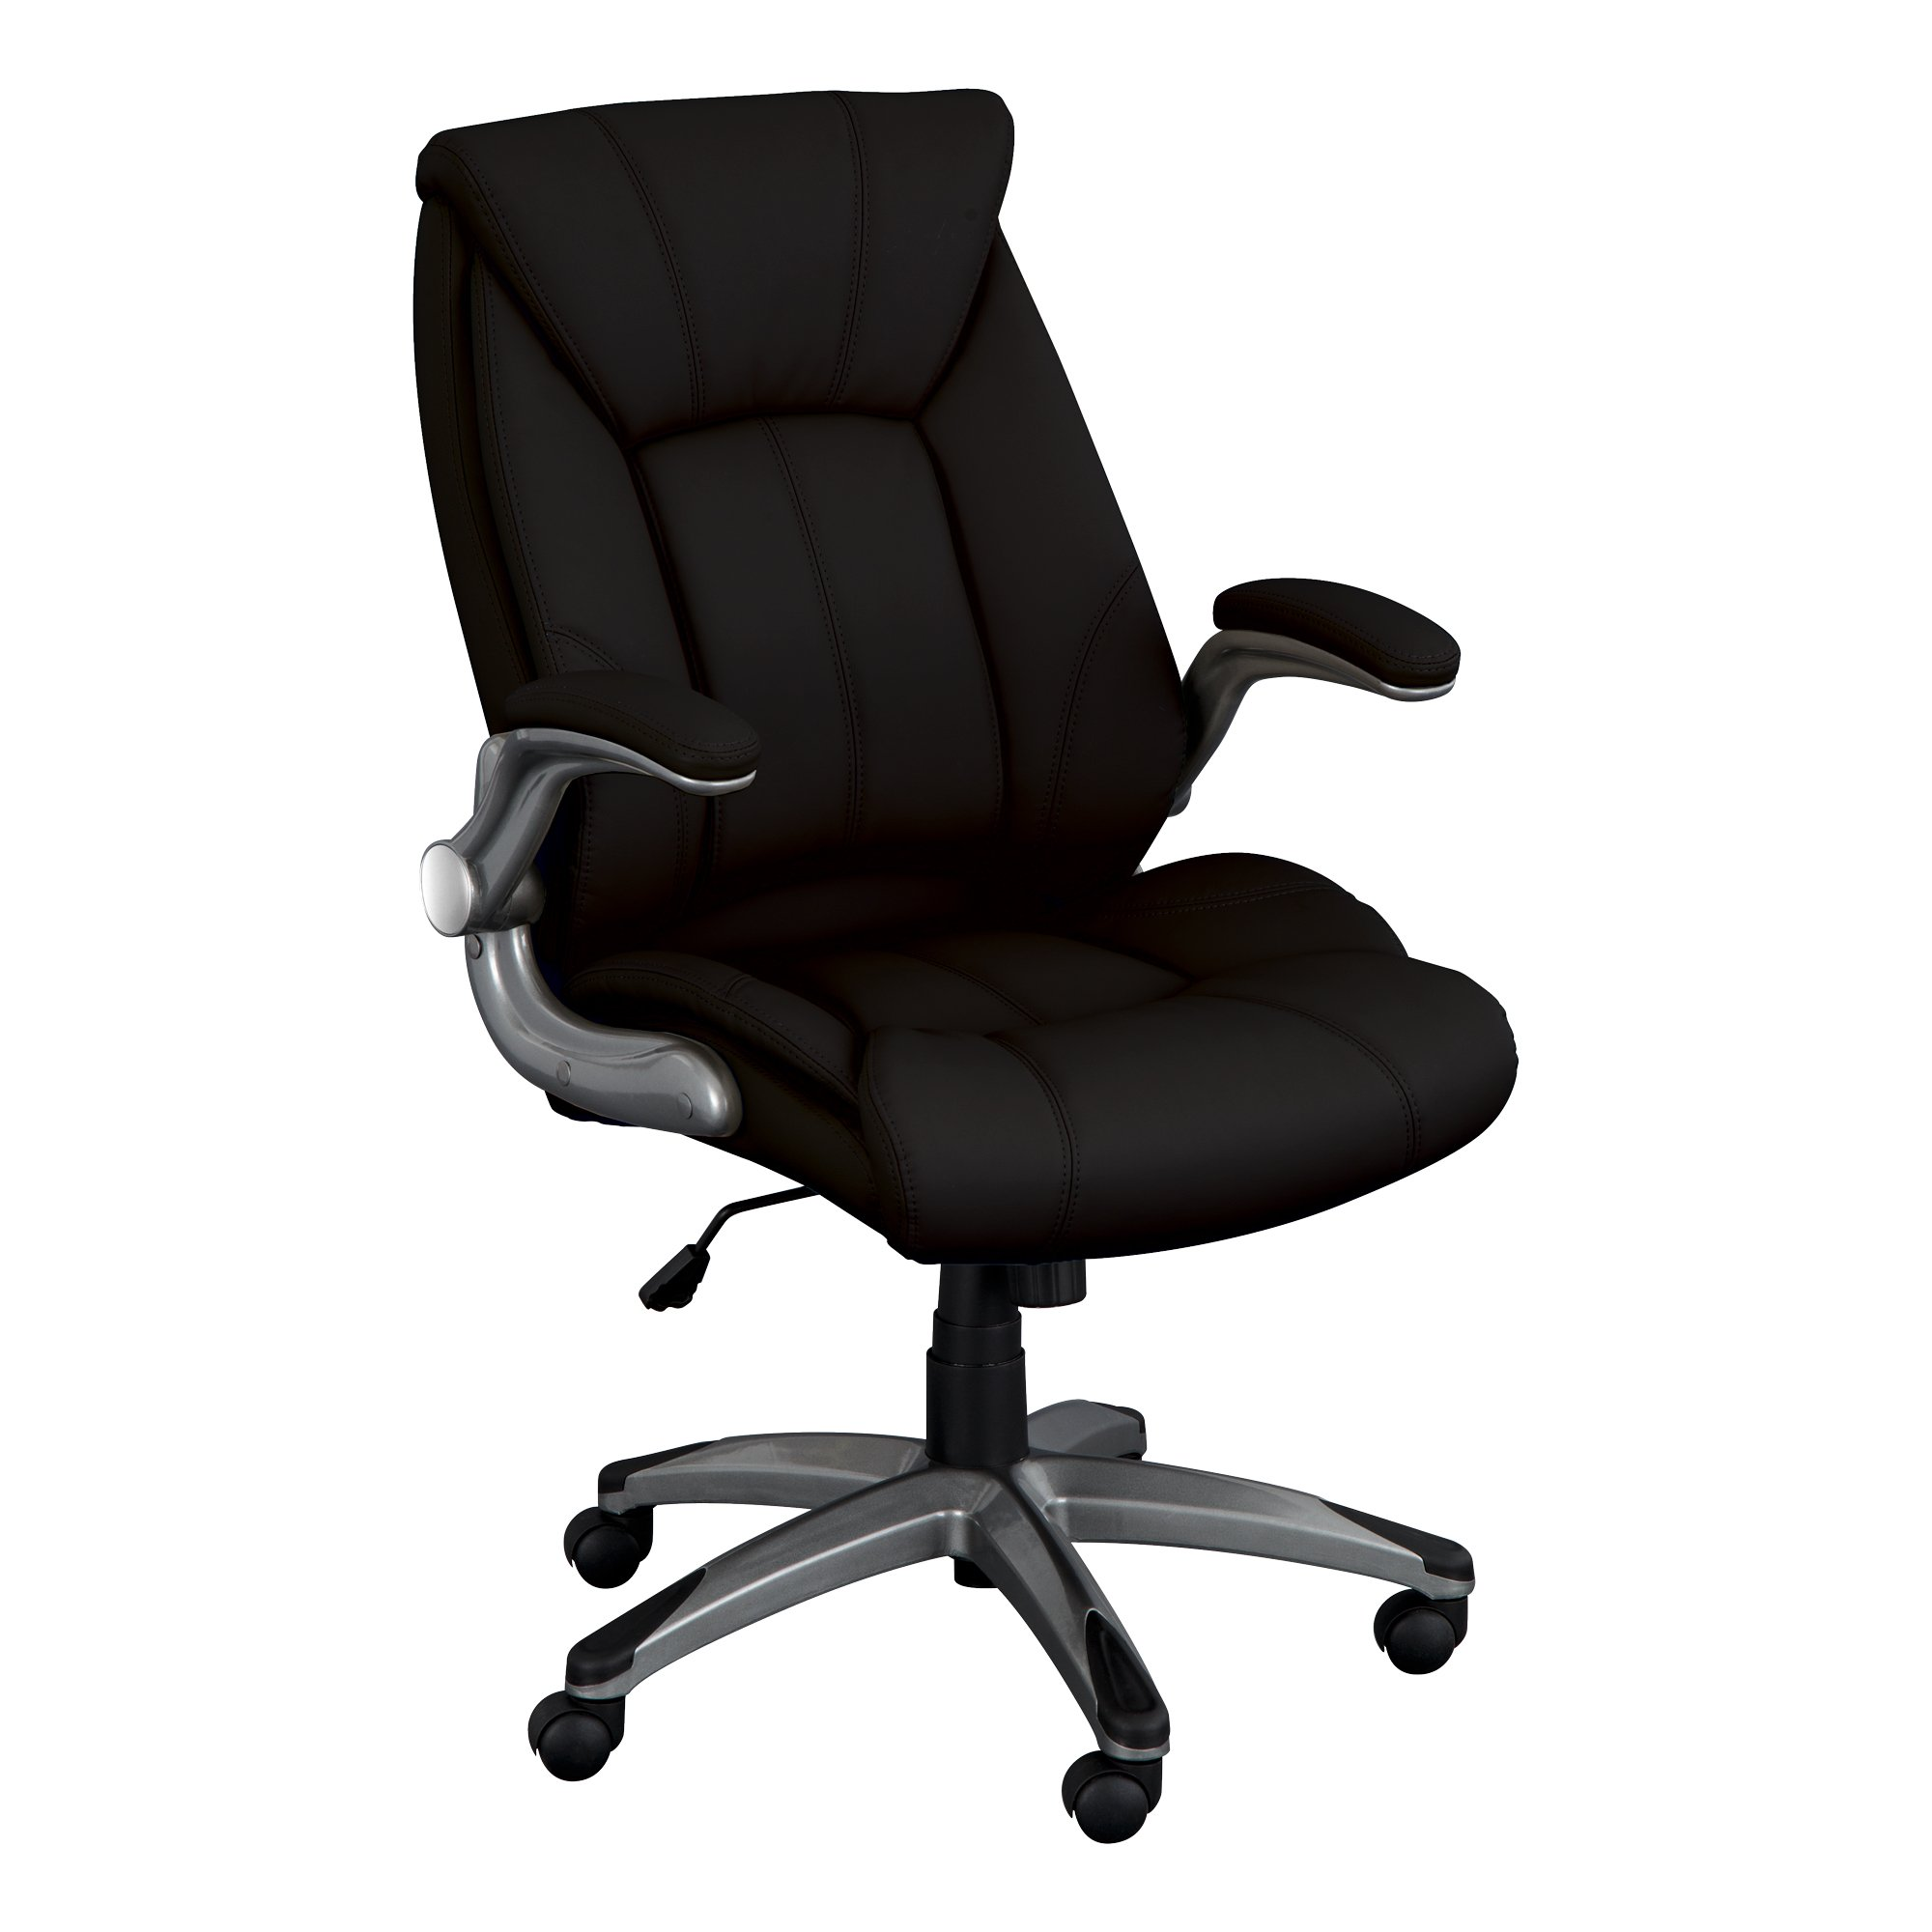 Norwood Commercial Furniture Executive Chair with Flip-Up Arms, Black, NOR-OUG1041BK-SO